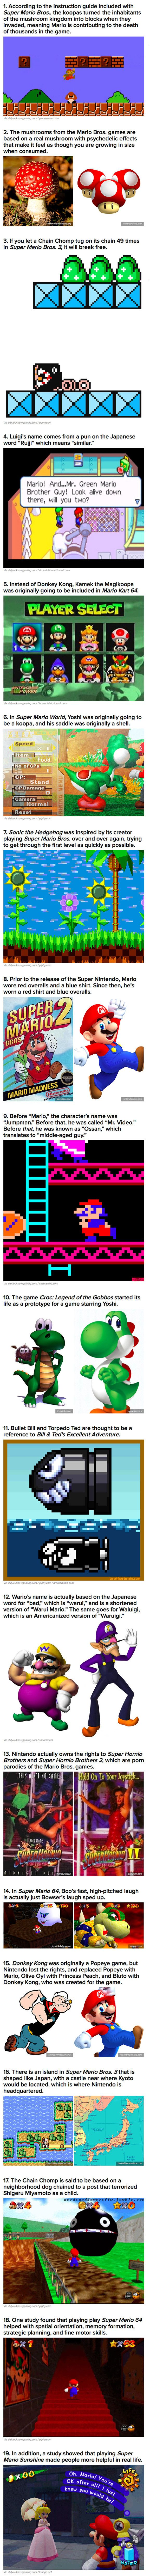 Here are some cool and interesting things you may not have known about Super Mario Bros.